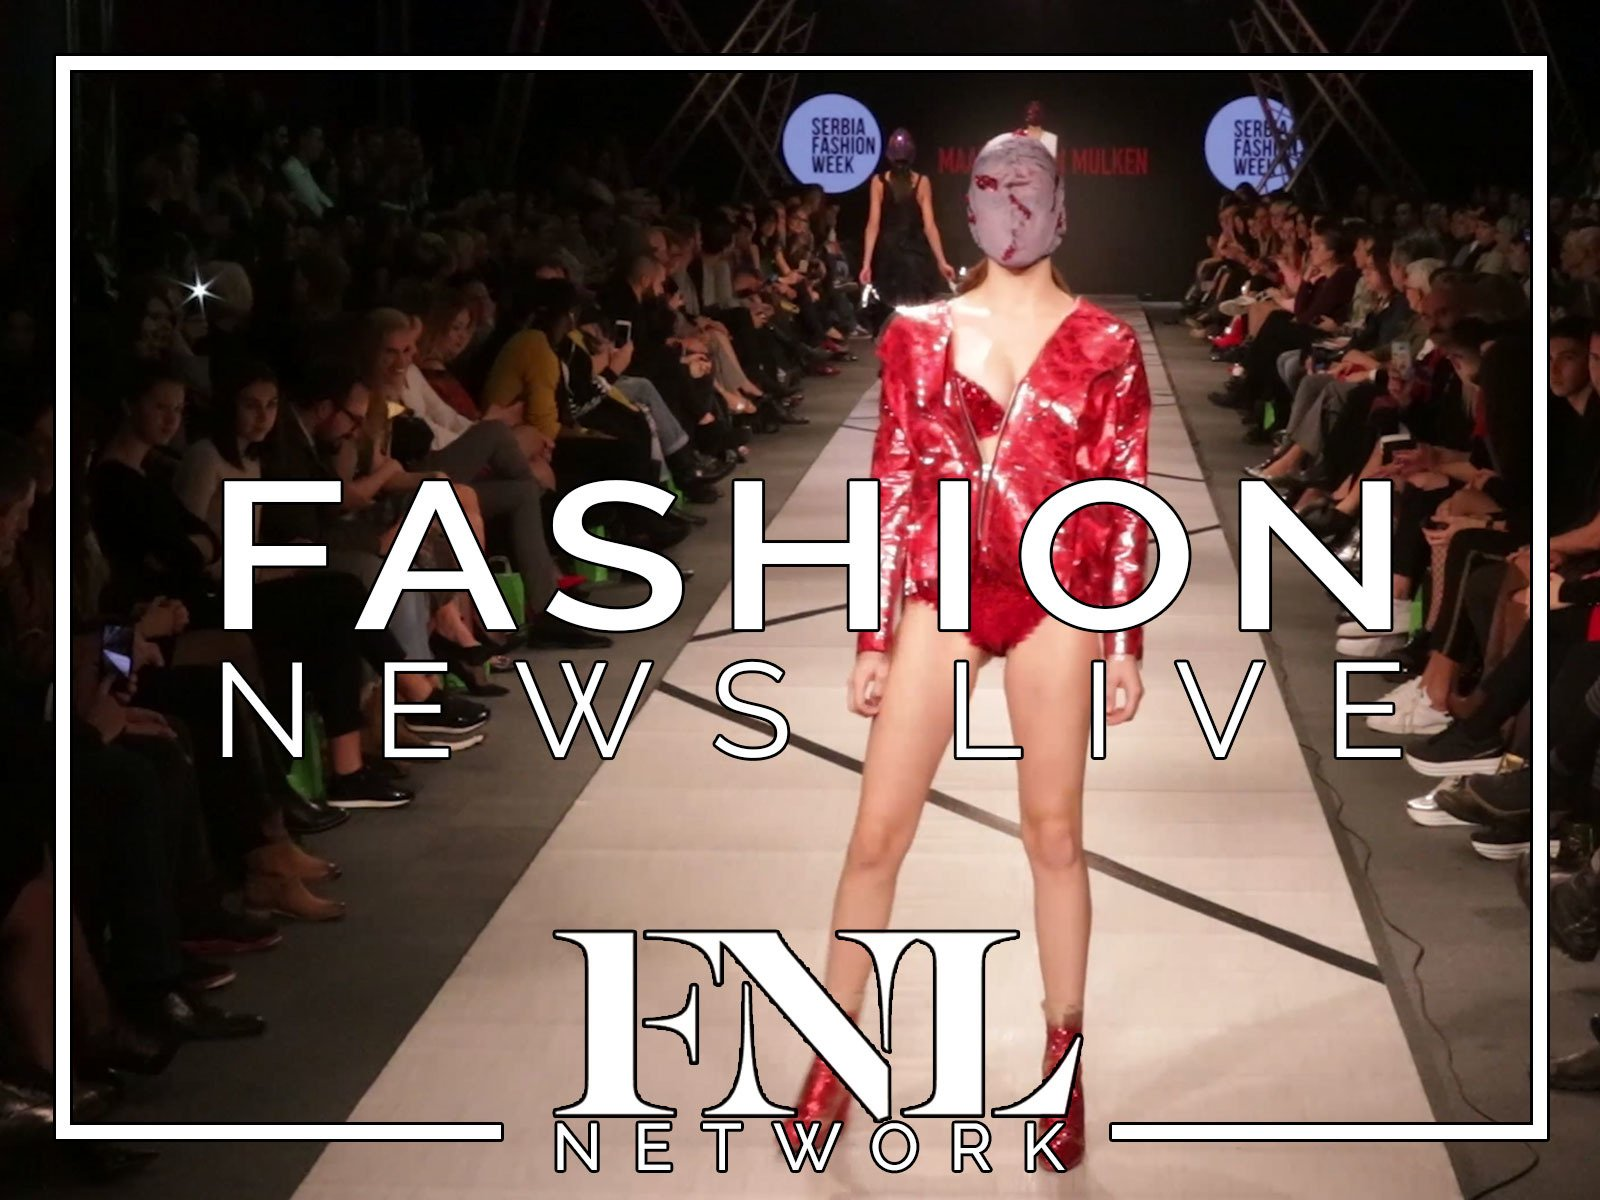 Fashion News Live